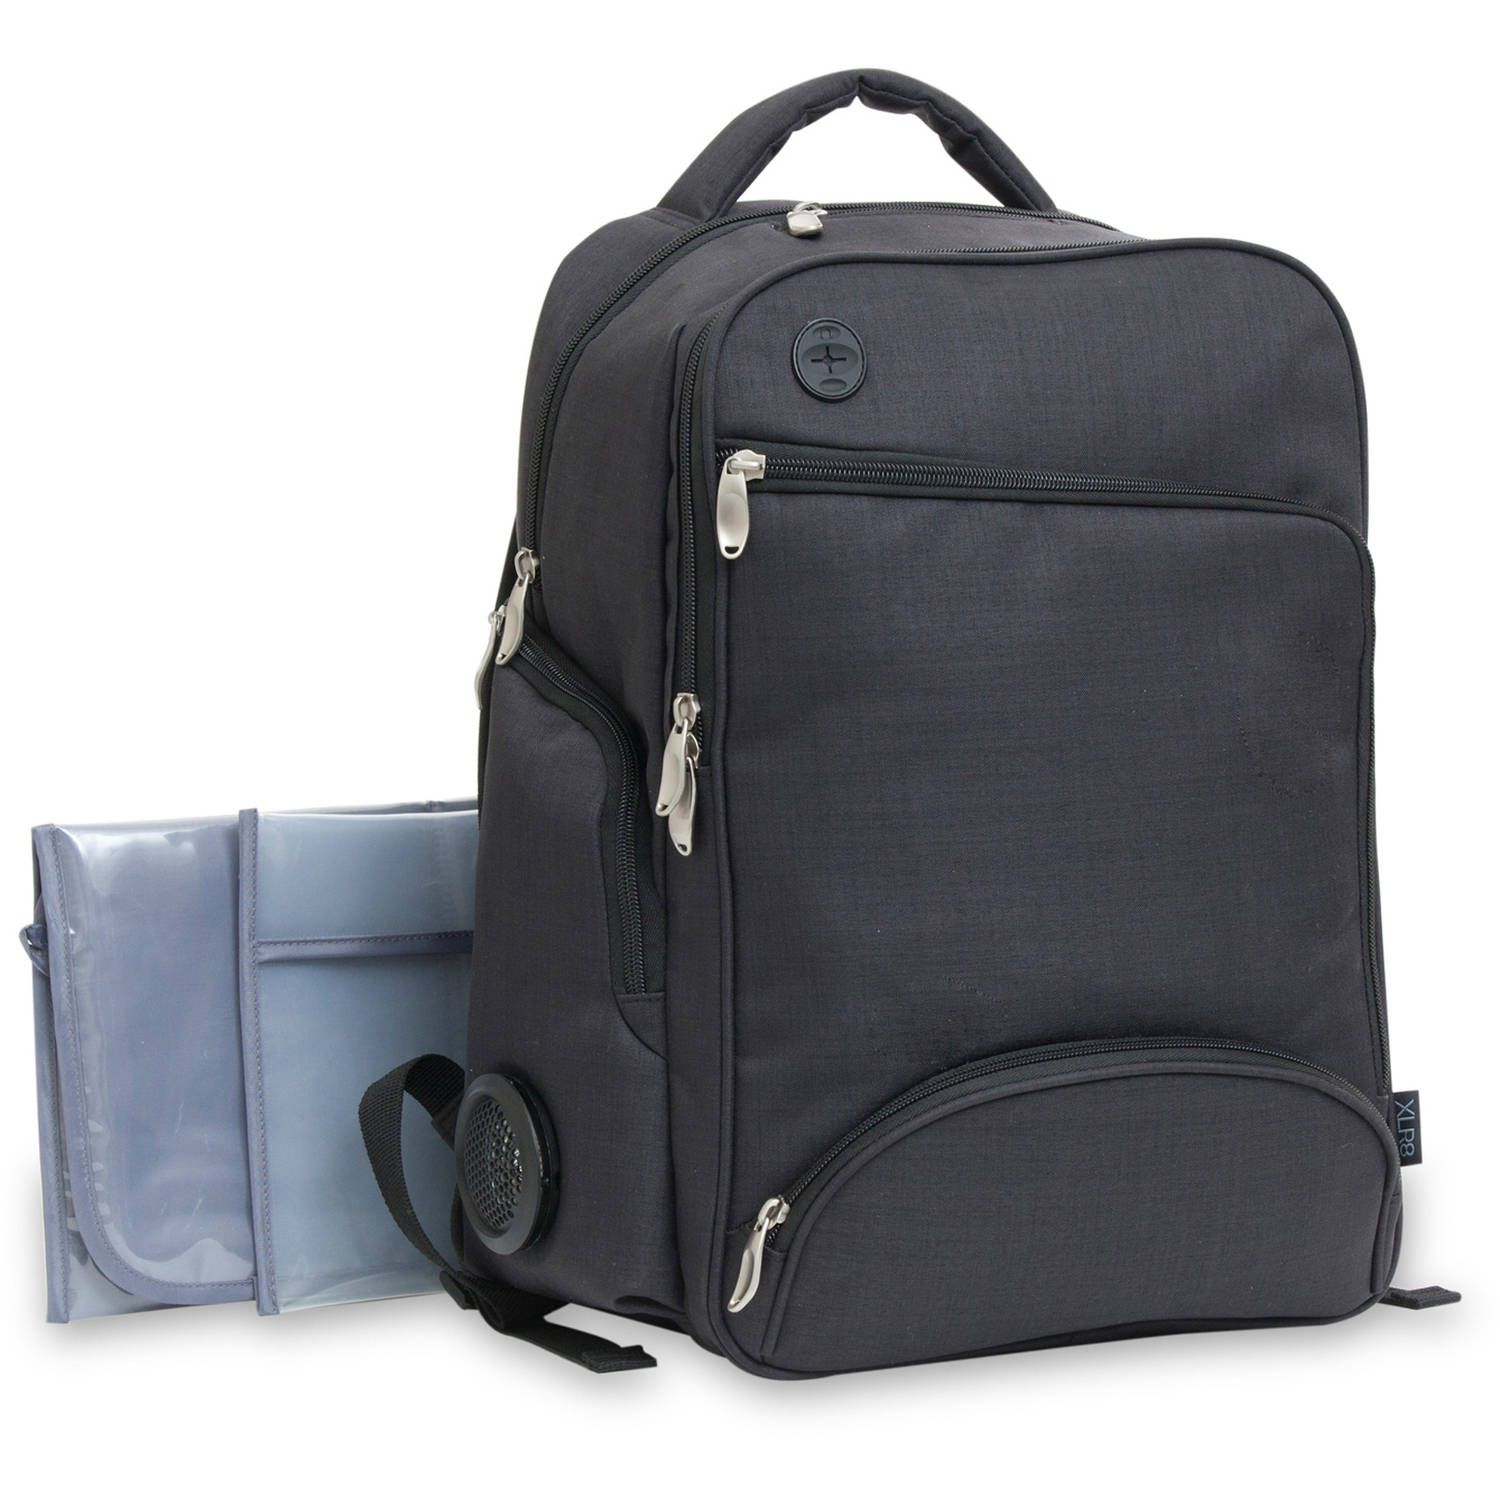 d79308e7ec78 7 Best Backpack Diaper Bags - Top Rated Baby Backpack Diaper .